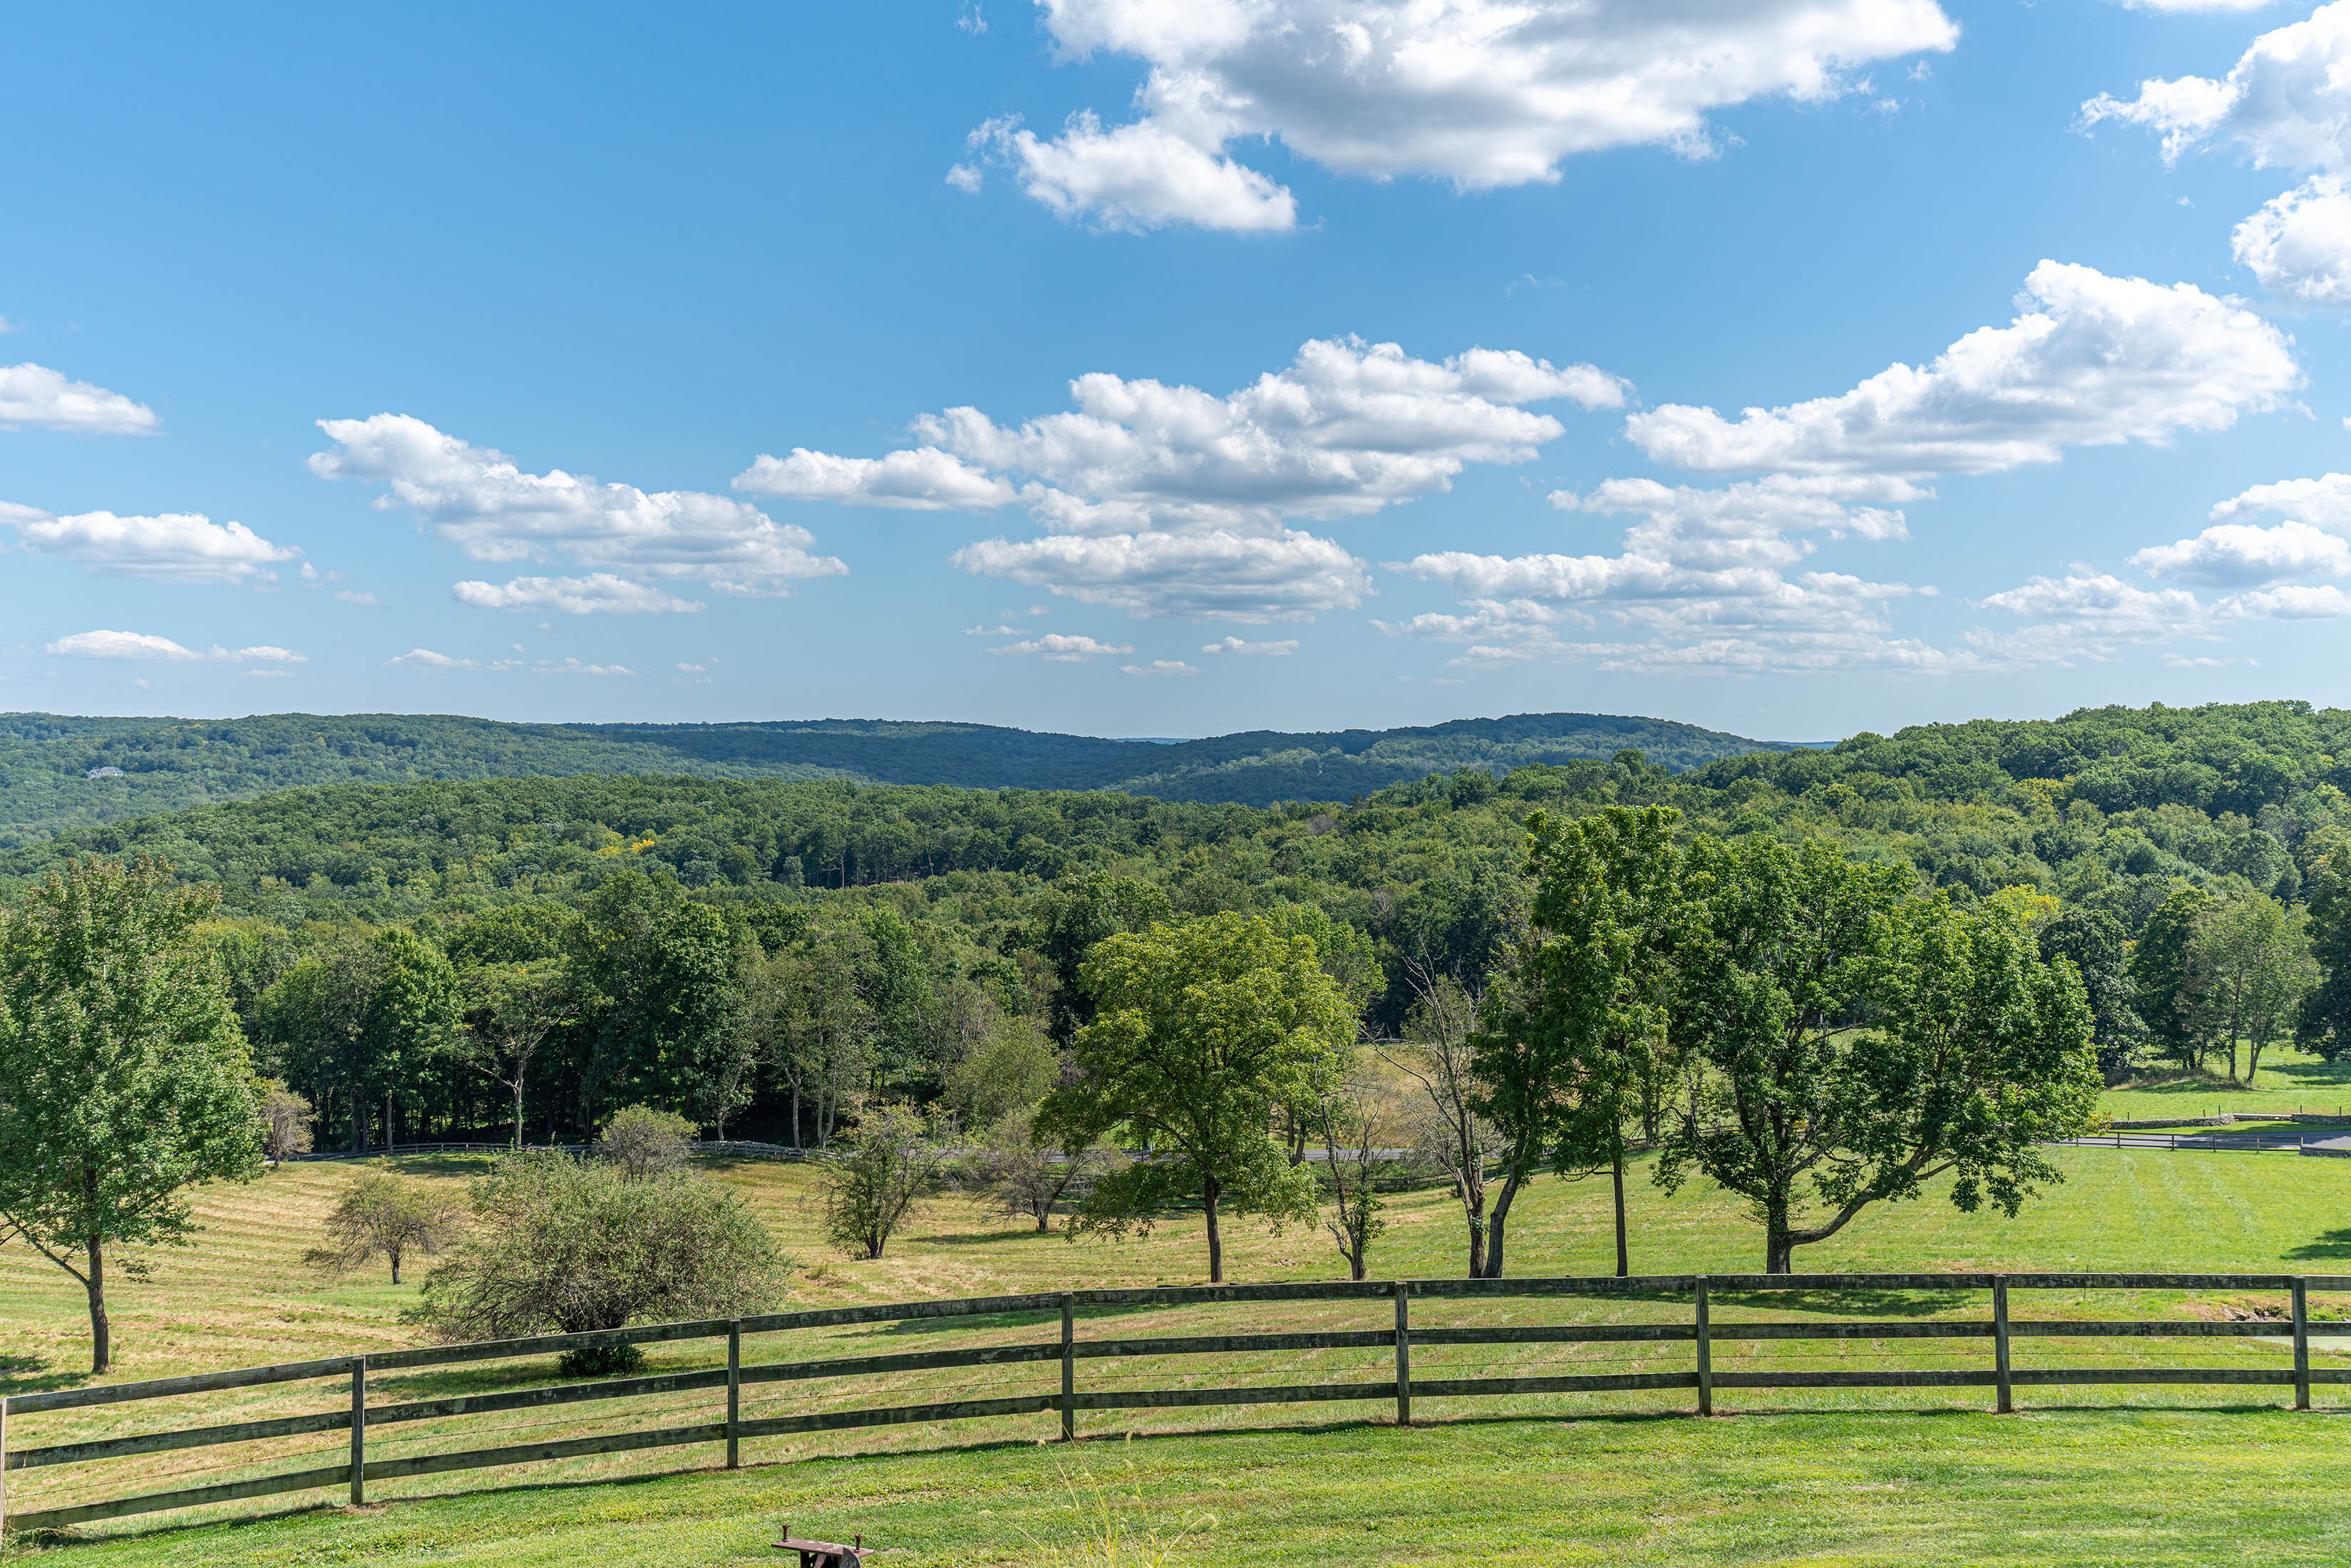 Building Site: 57 Acres Unencumbered with 240° Views